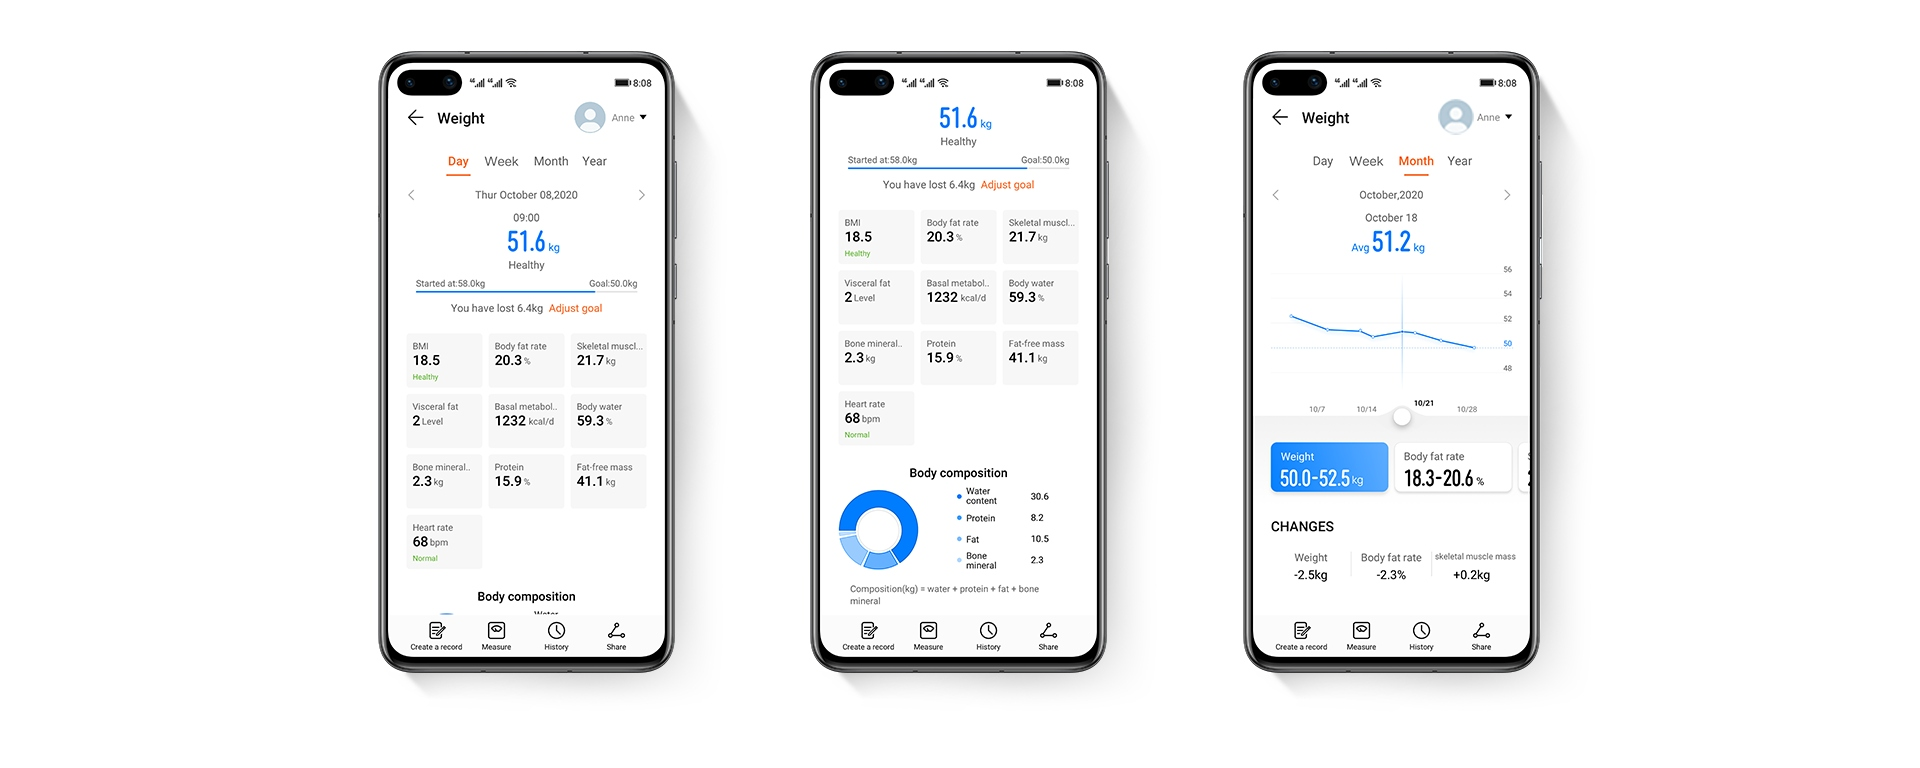 HUAWEI Scale 3 Detailed Body Composition Analysis